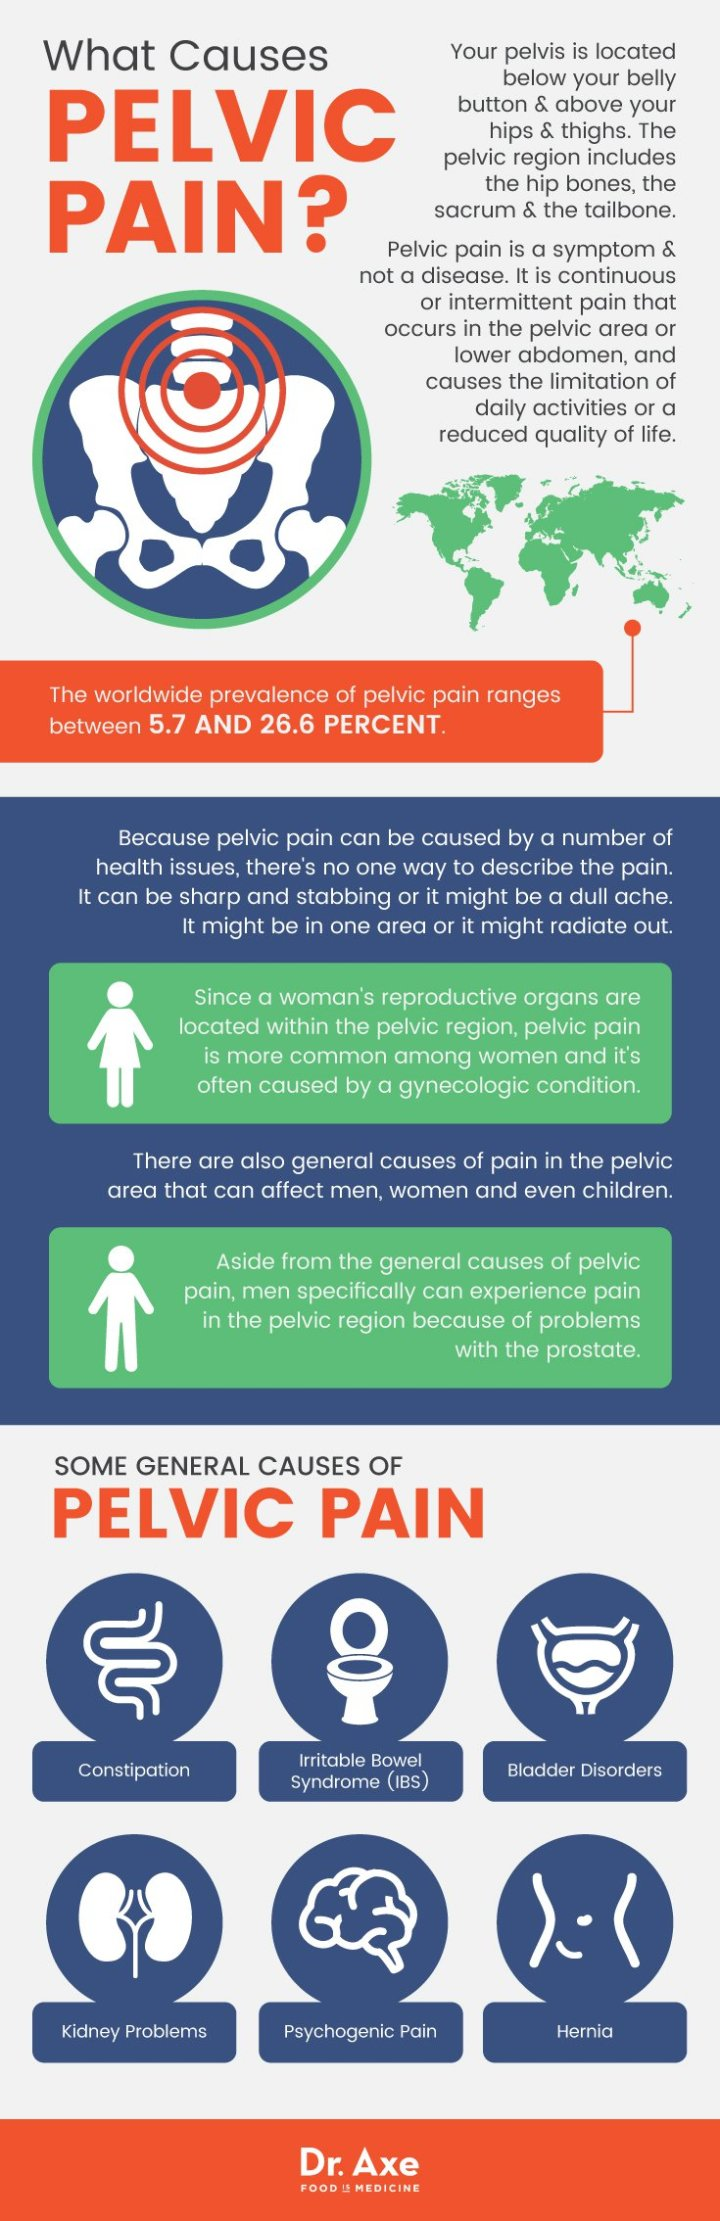 What causes pelvic pain?- Dr. Axe